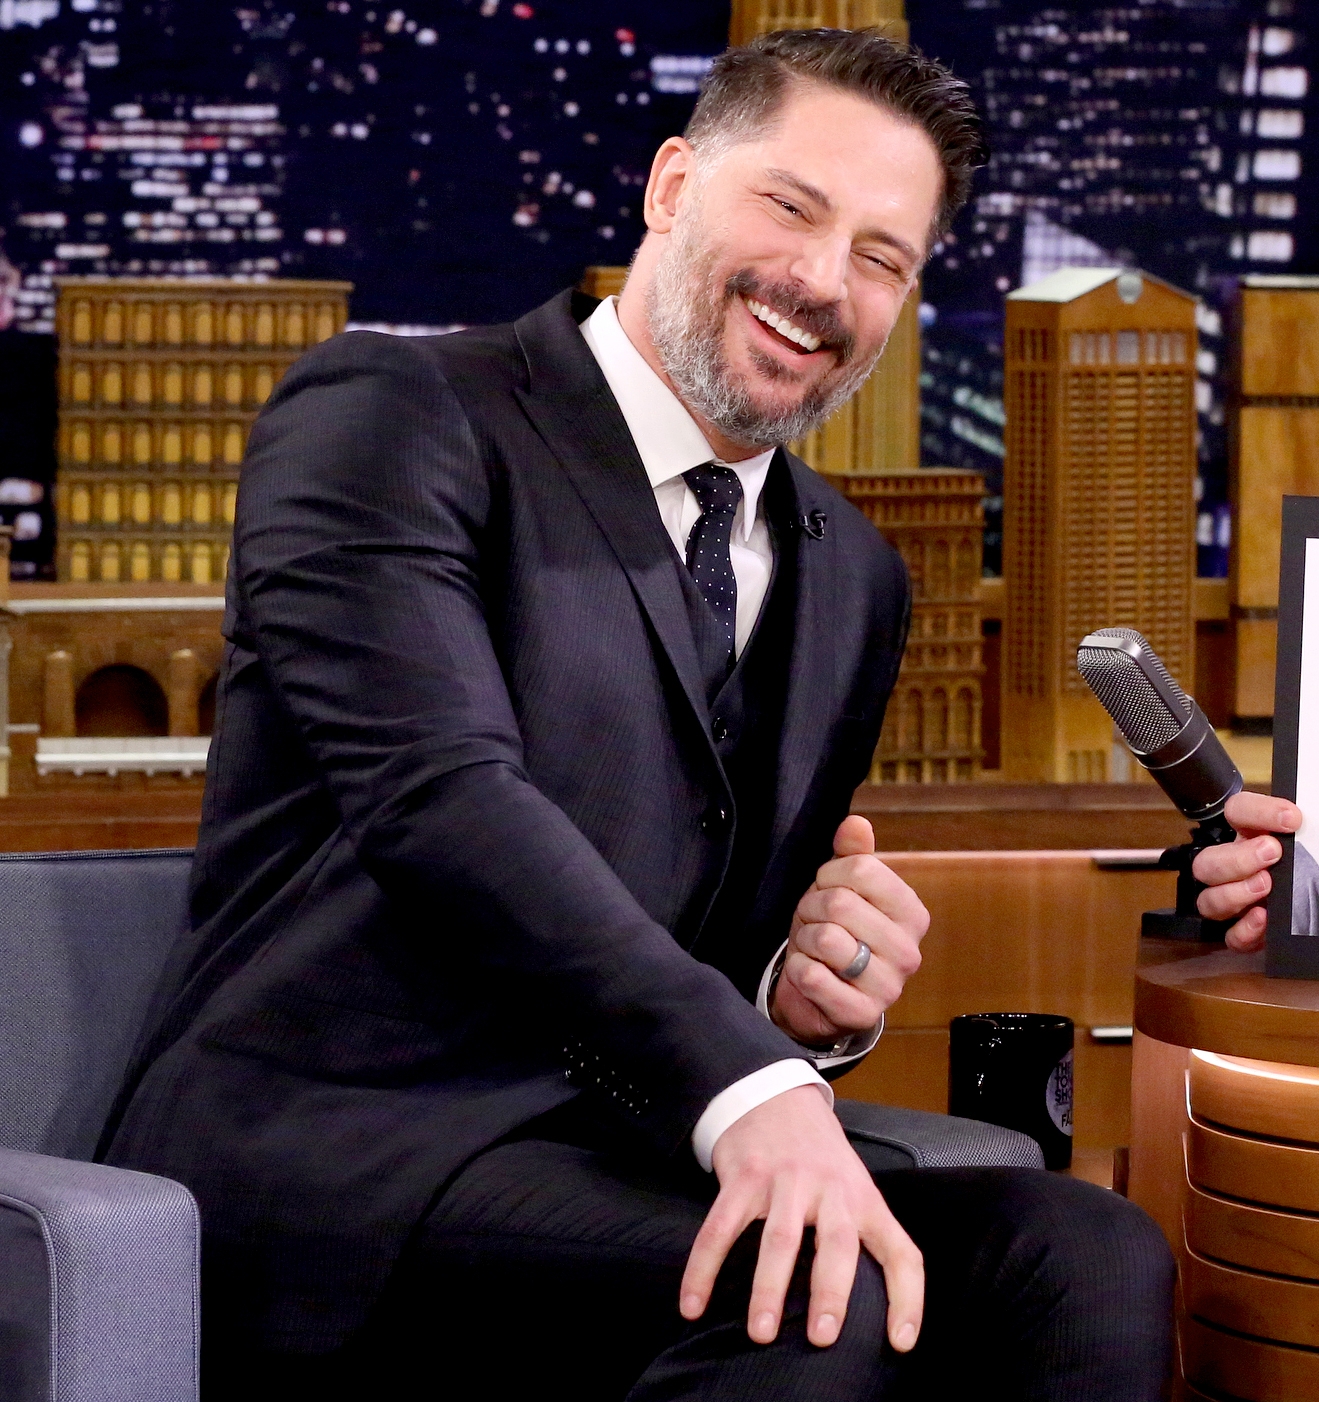 Joe Manganiello during an interview with host Jimmy Fallon on March 21, 2017